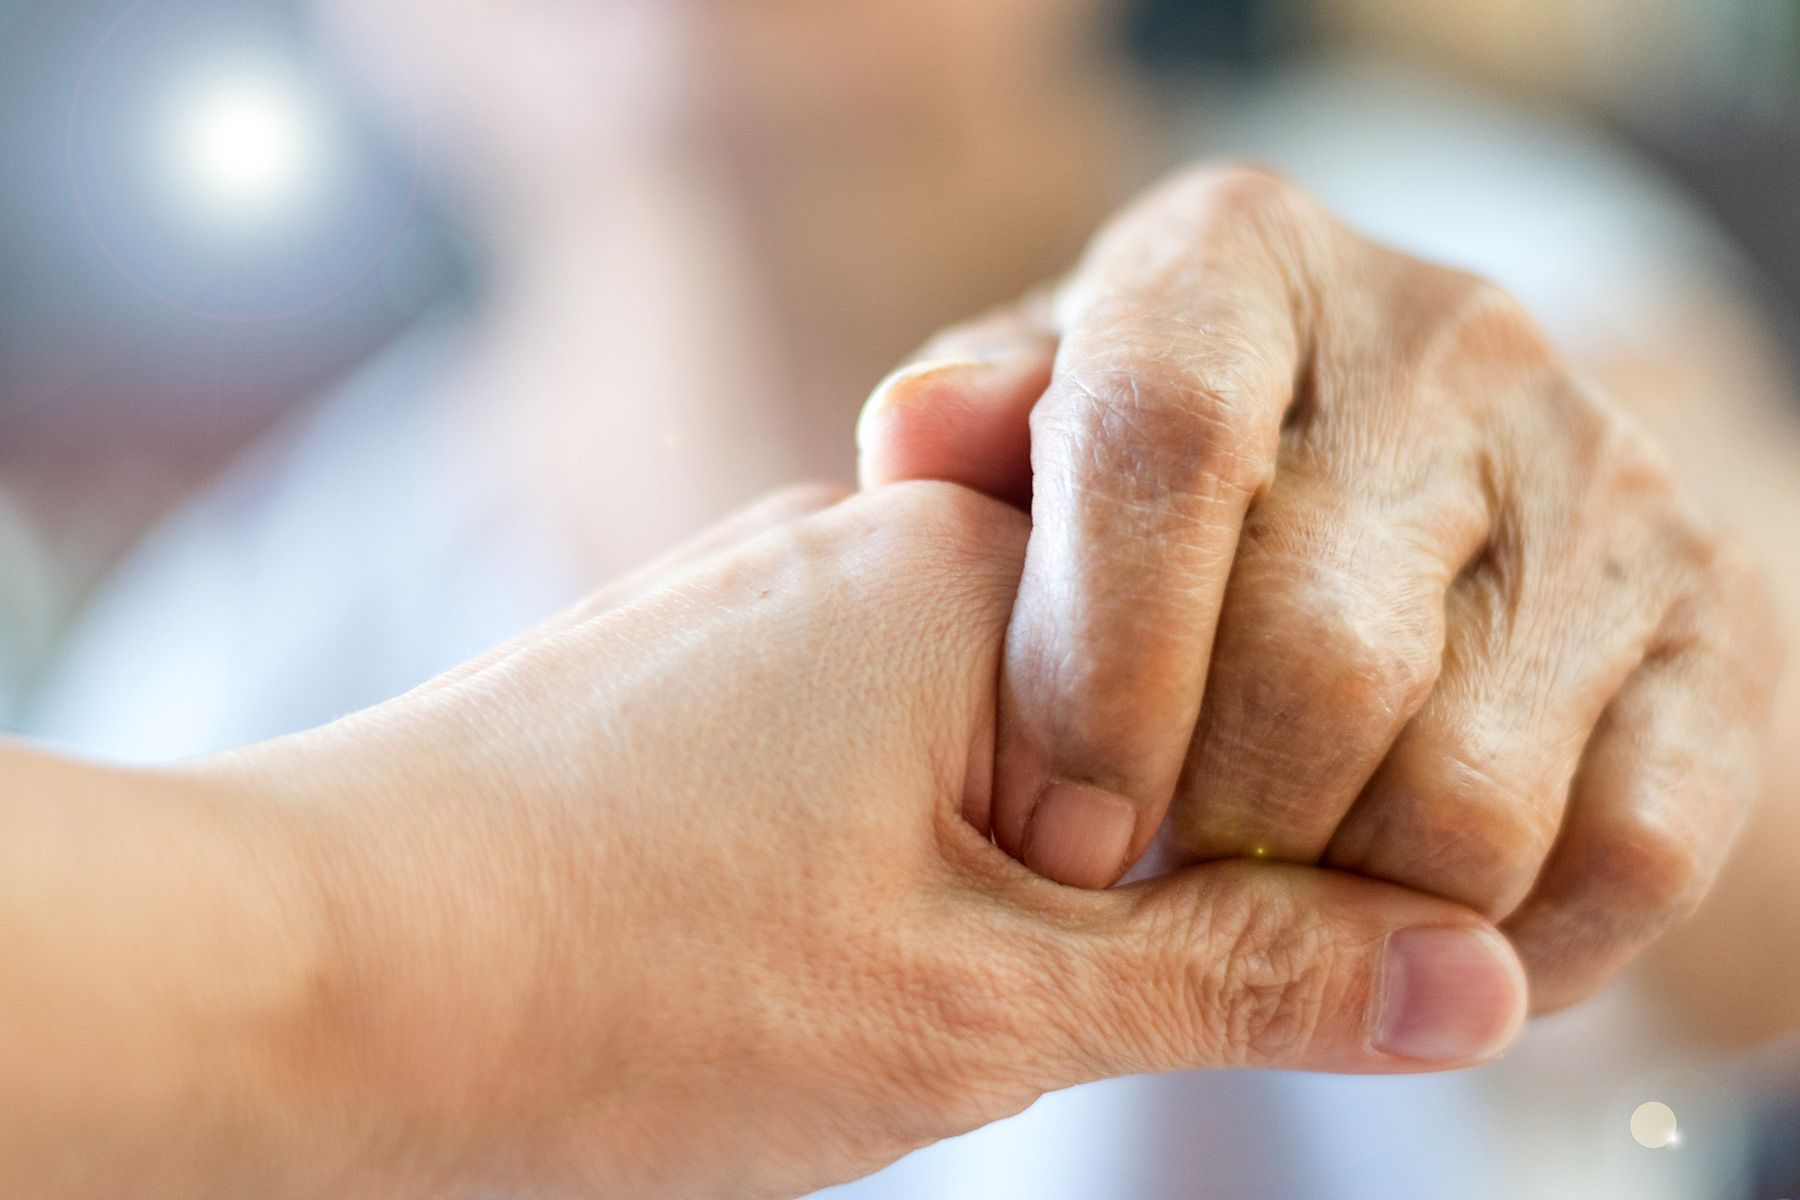 The Caregiver's Role